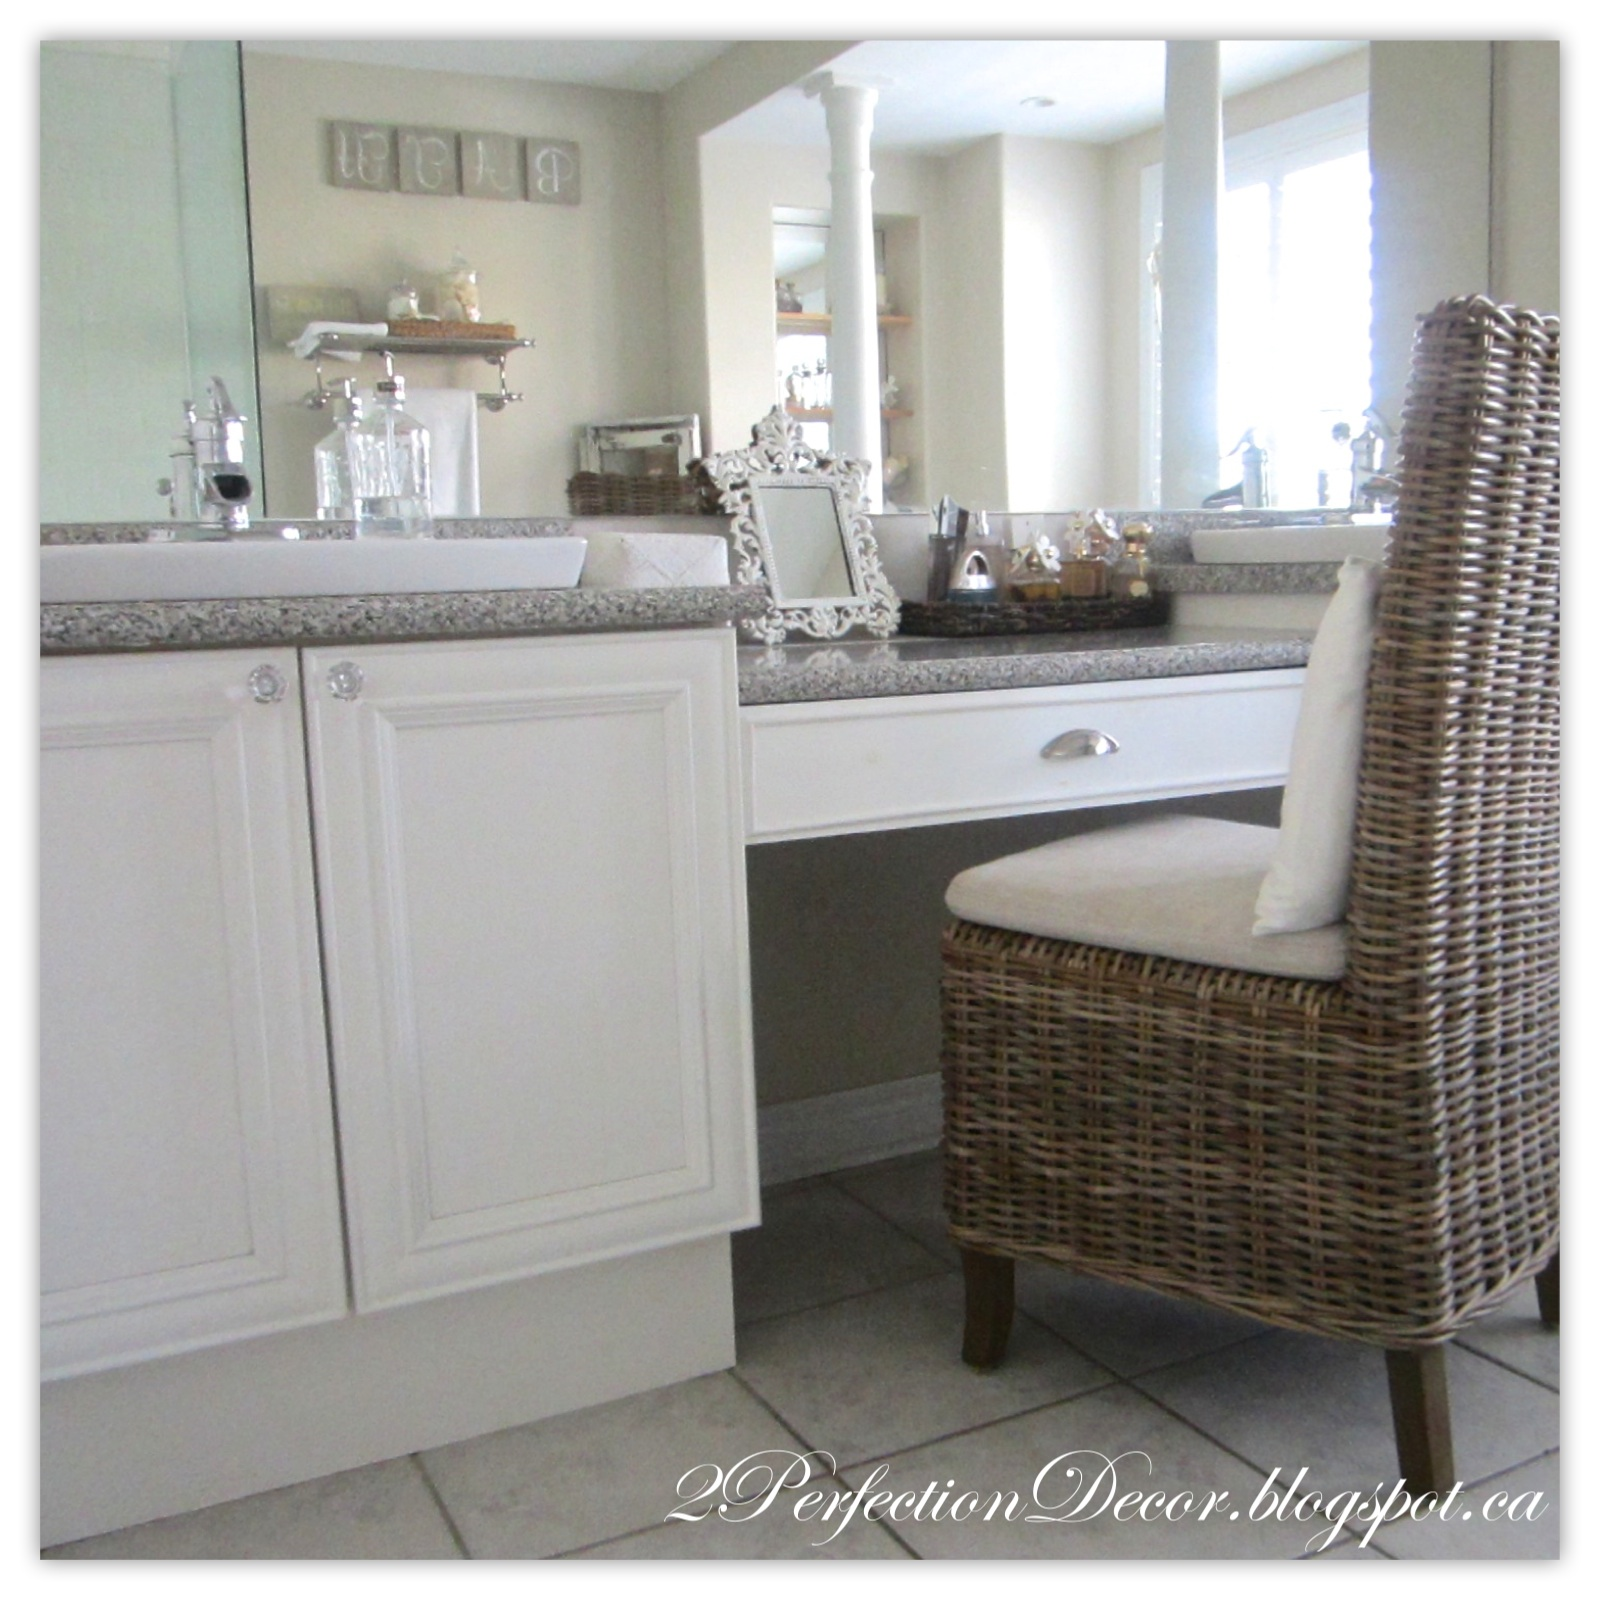 Marvelous Perfection Decor Updating old Bathroom Sinks while re using old vanities